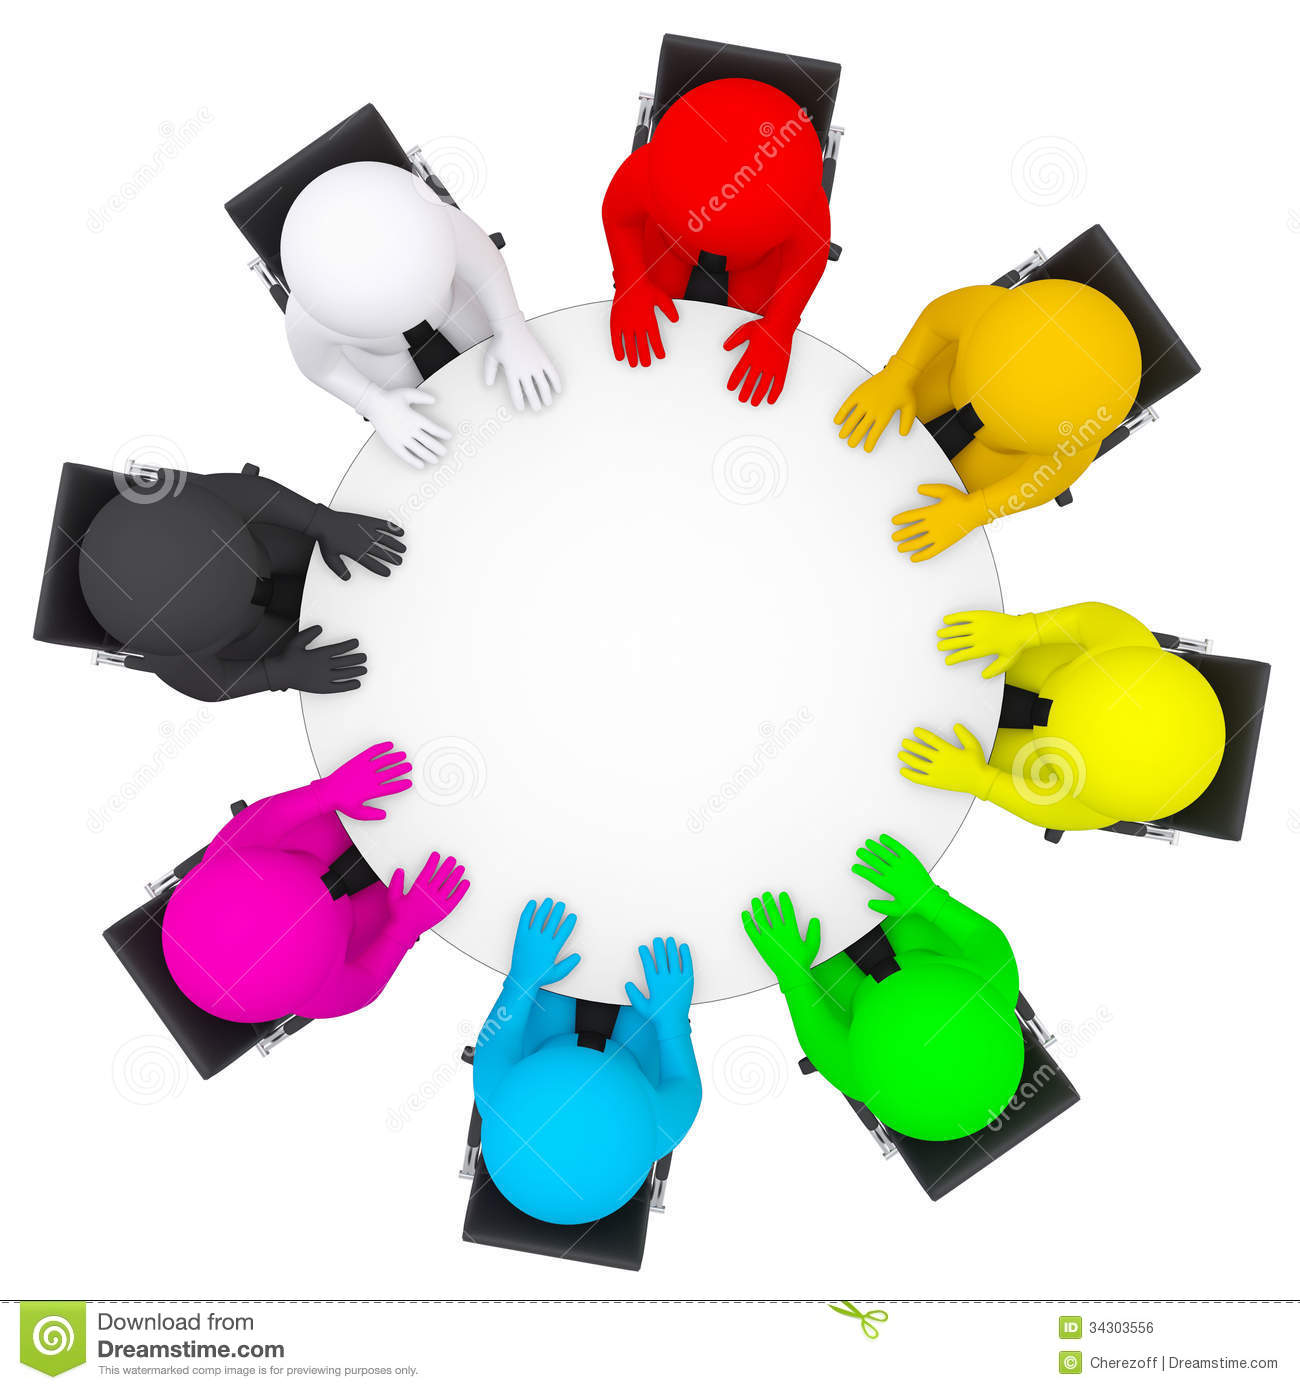 Round table meeting icon - Multicolored People Sitting At A Round Table Royalty Free